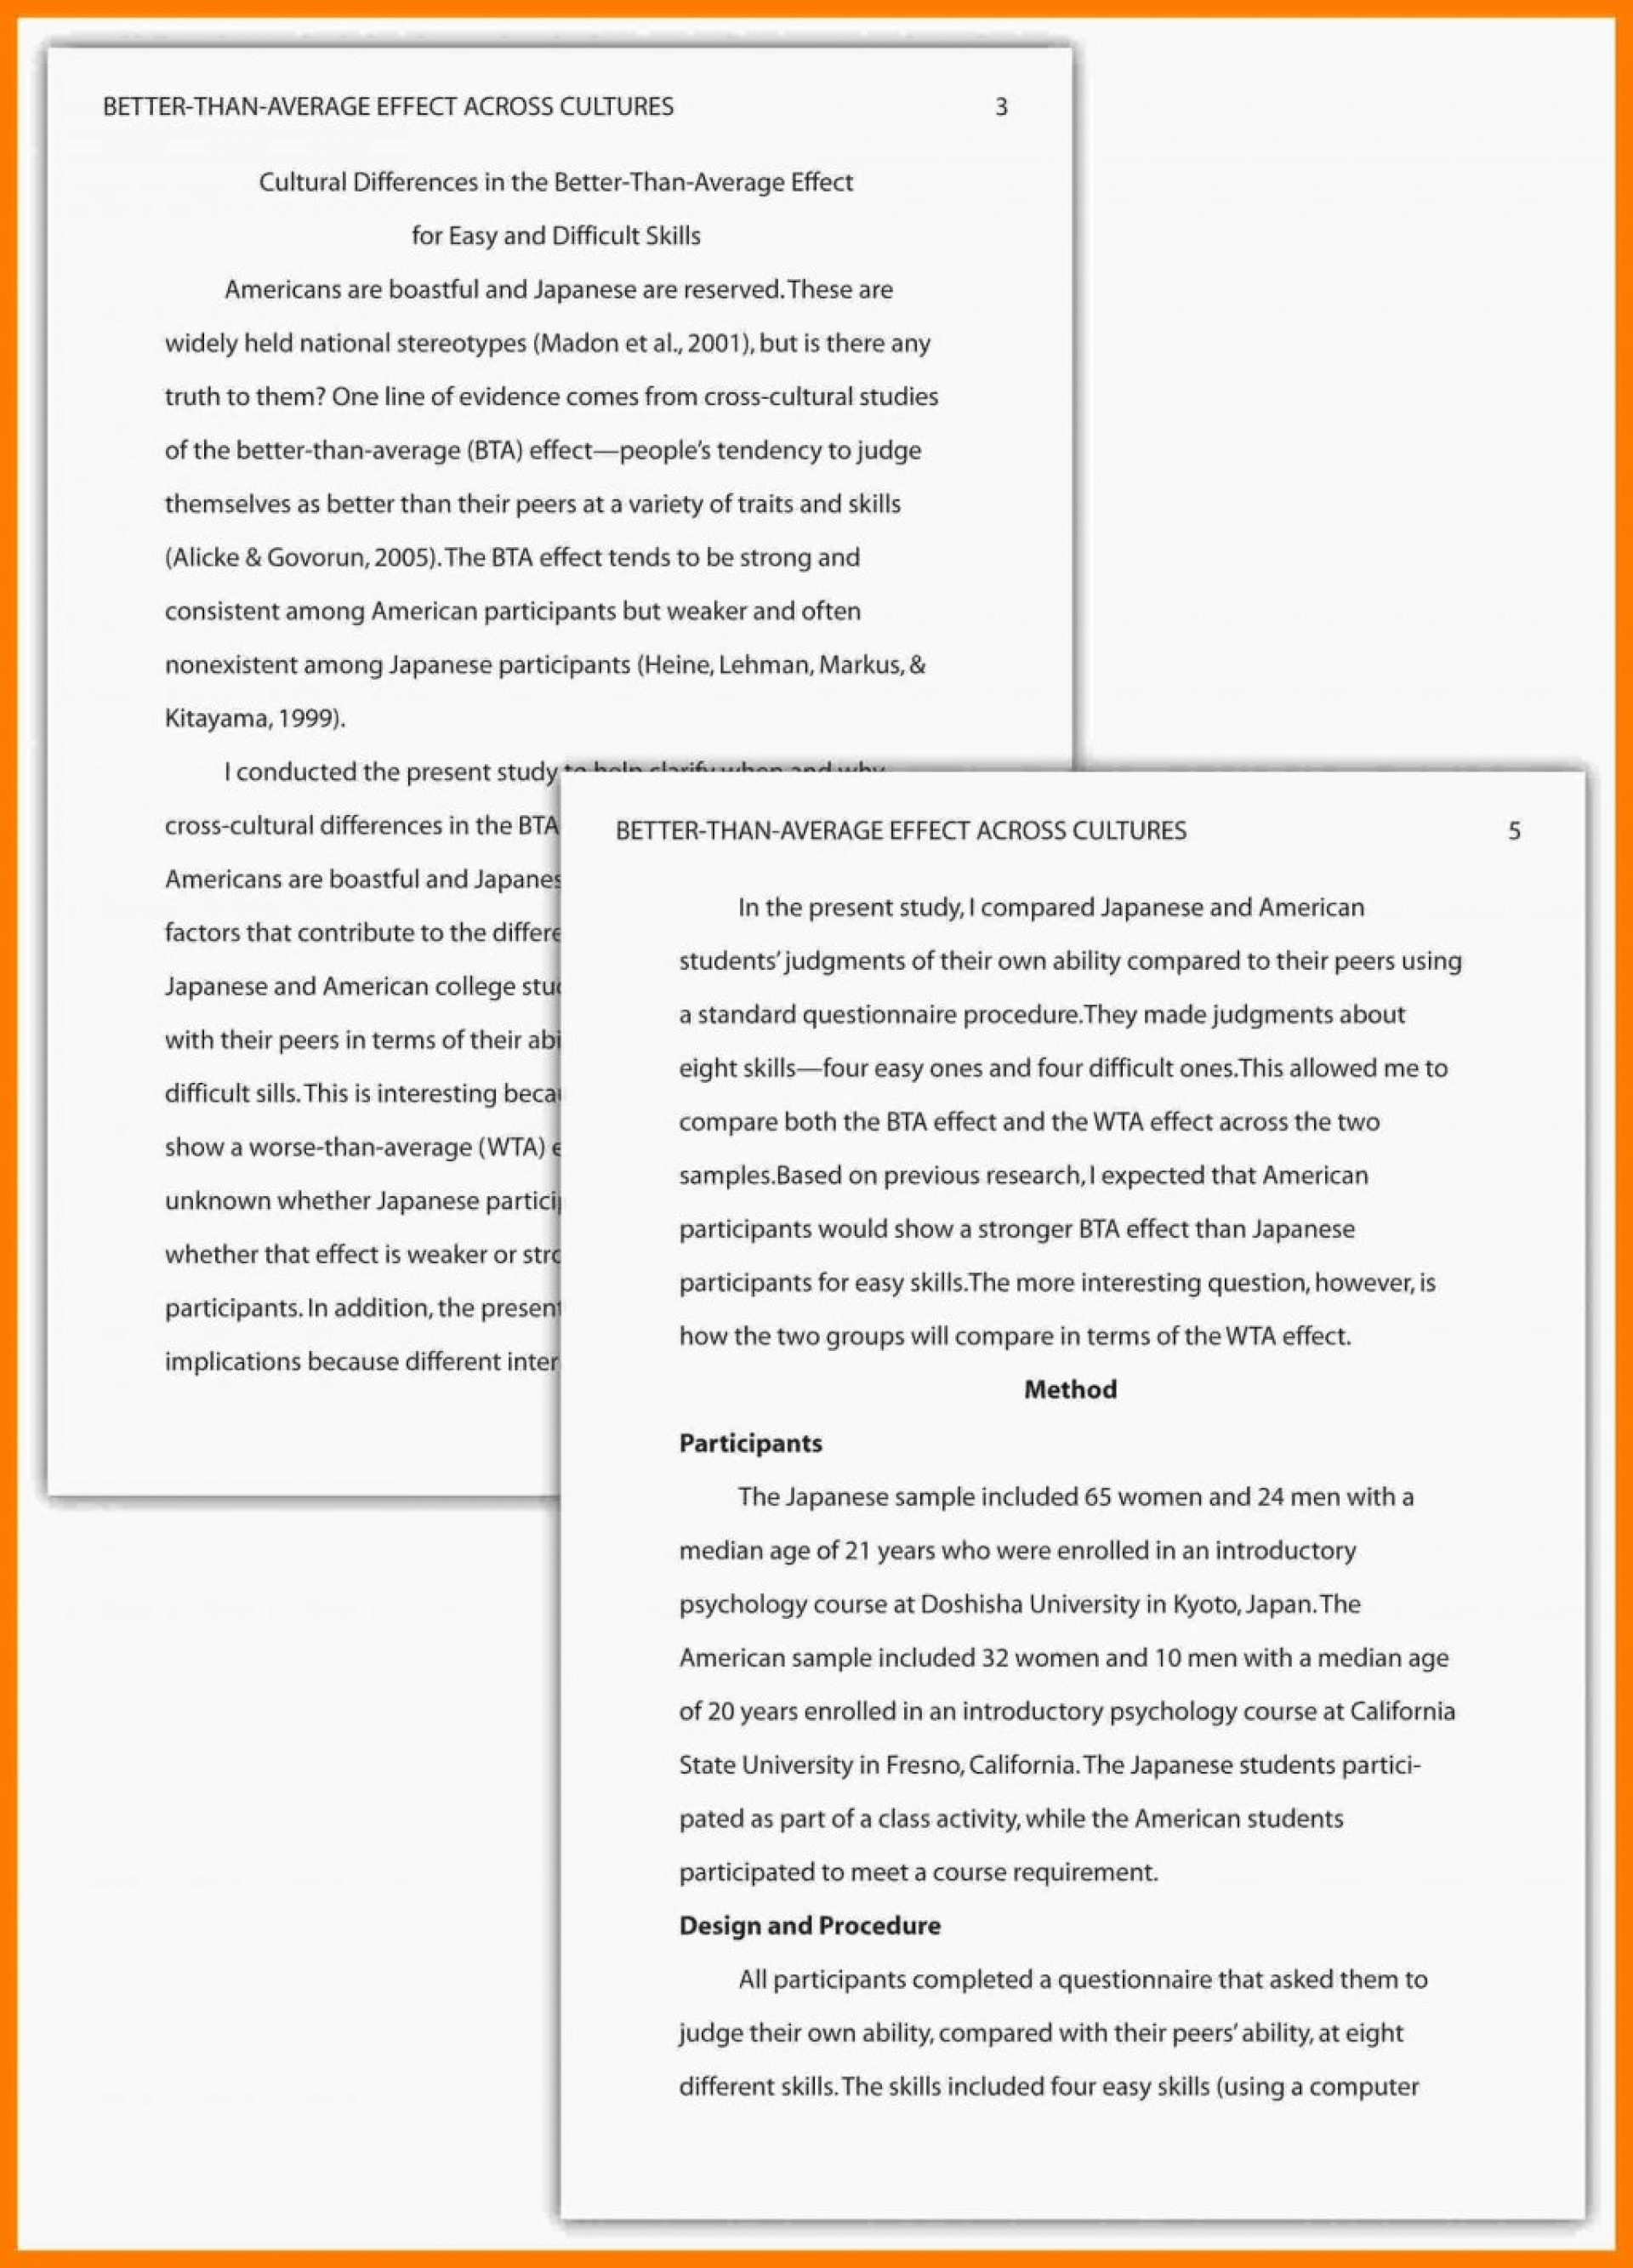 008 Research Paper Medical Outline Template Apa Style Example Teller Resume Formatarch Papers In Non Singular 1920